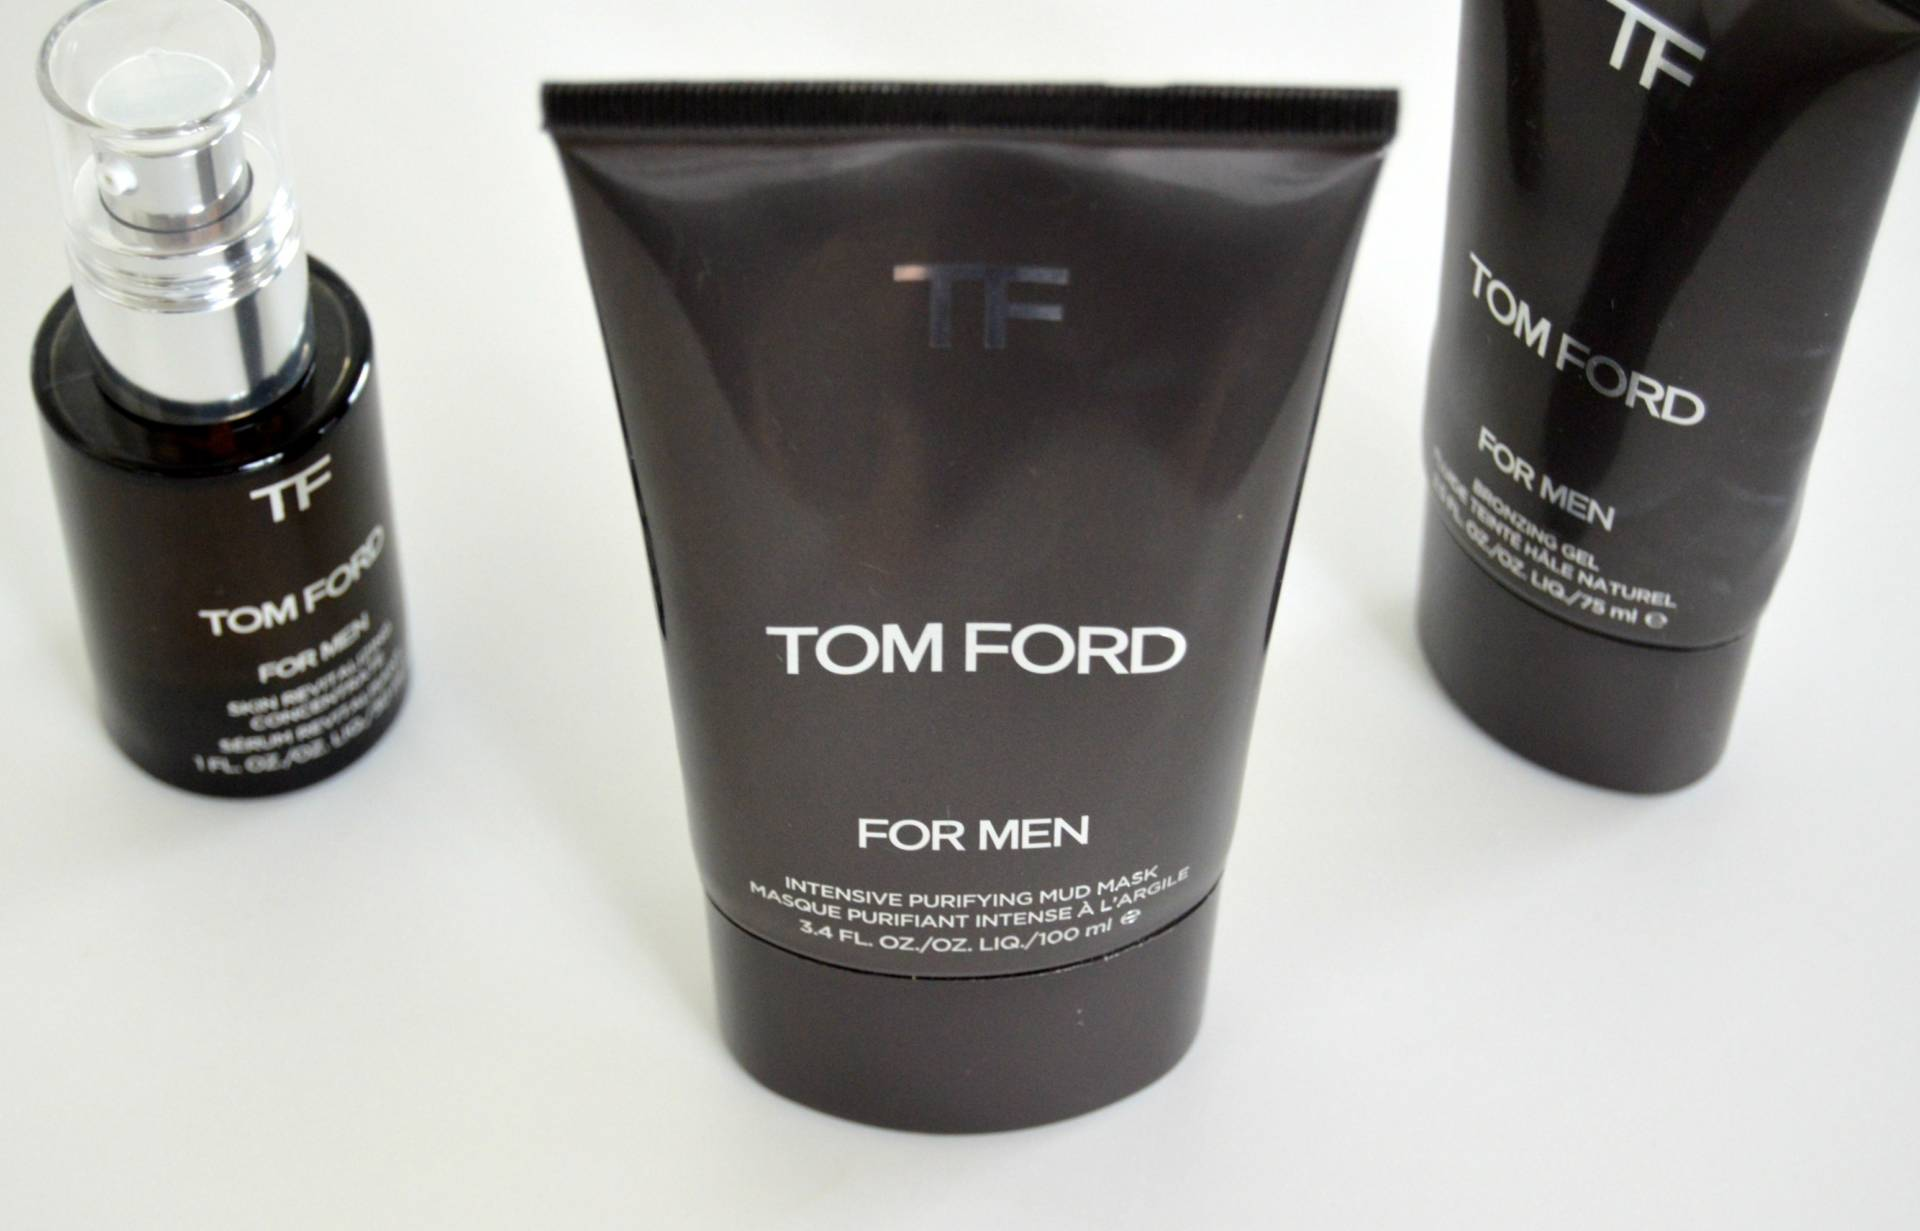 tom ford for men mud mask review male grooming inhautepursuit